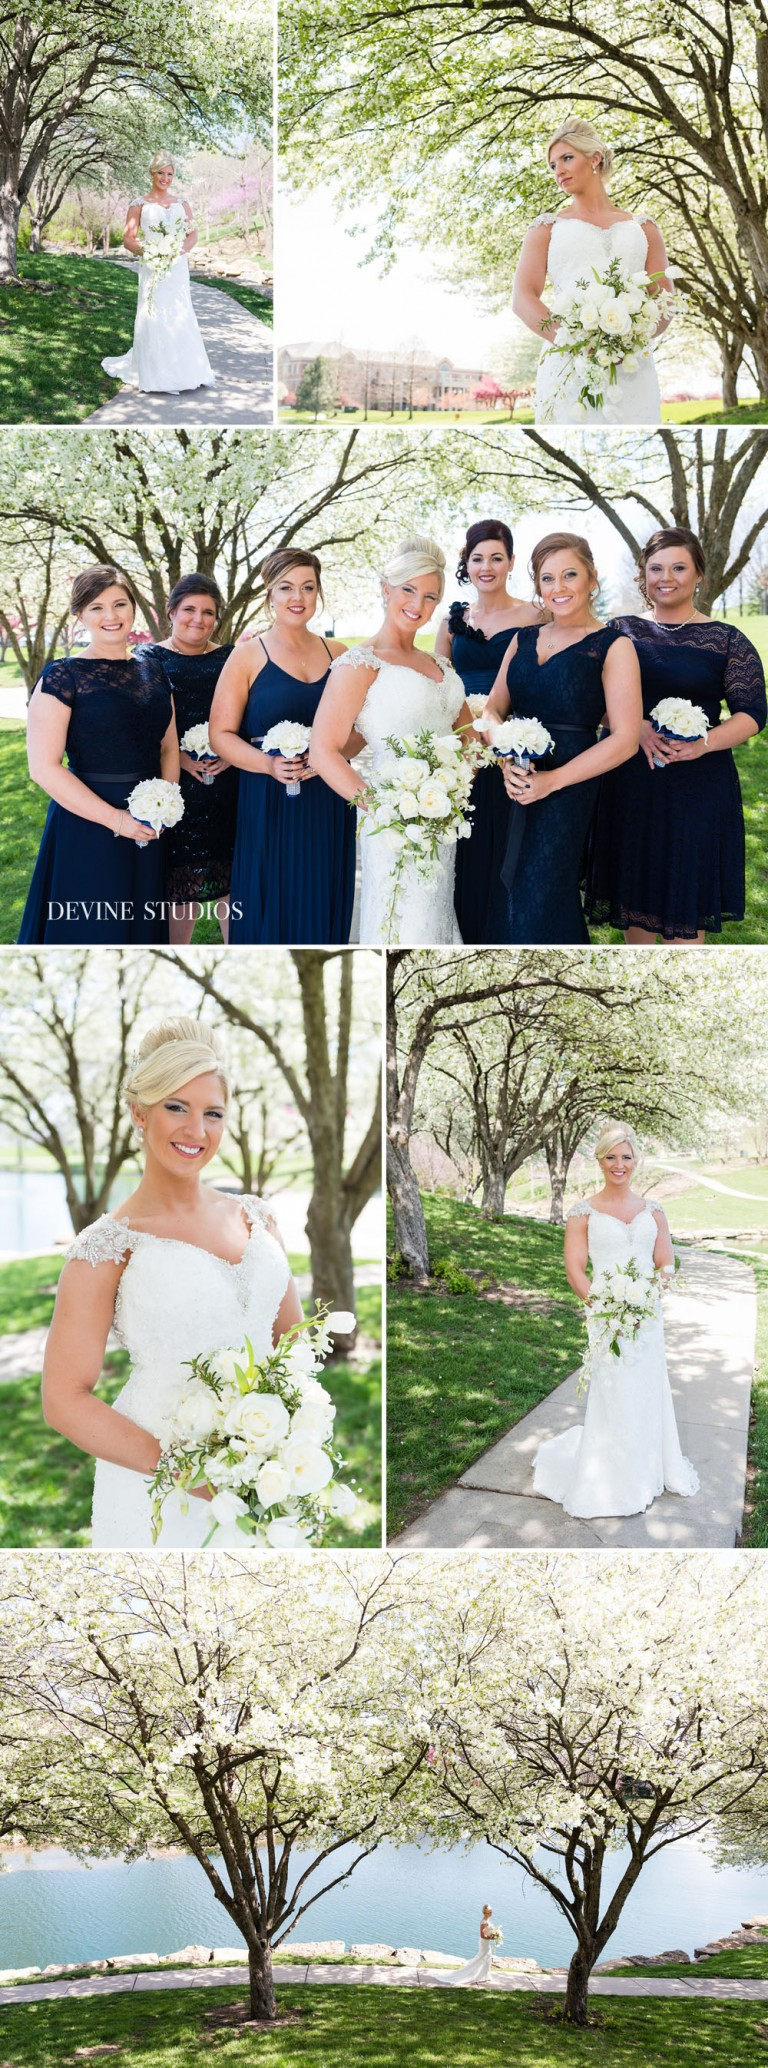 http://devinestudios.com/boudoir/wp-content/uploads/2016/05/10-839-post/Kansas-City-Wedding-Photography-Town-Pavilion-photojournalist-photographers6-768x2068.jpg